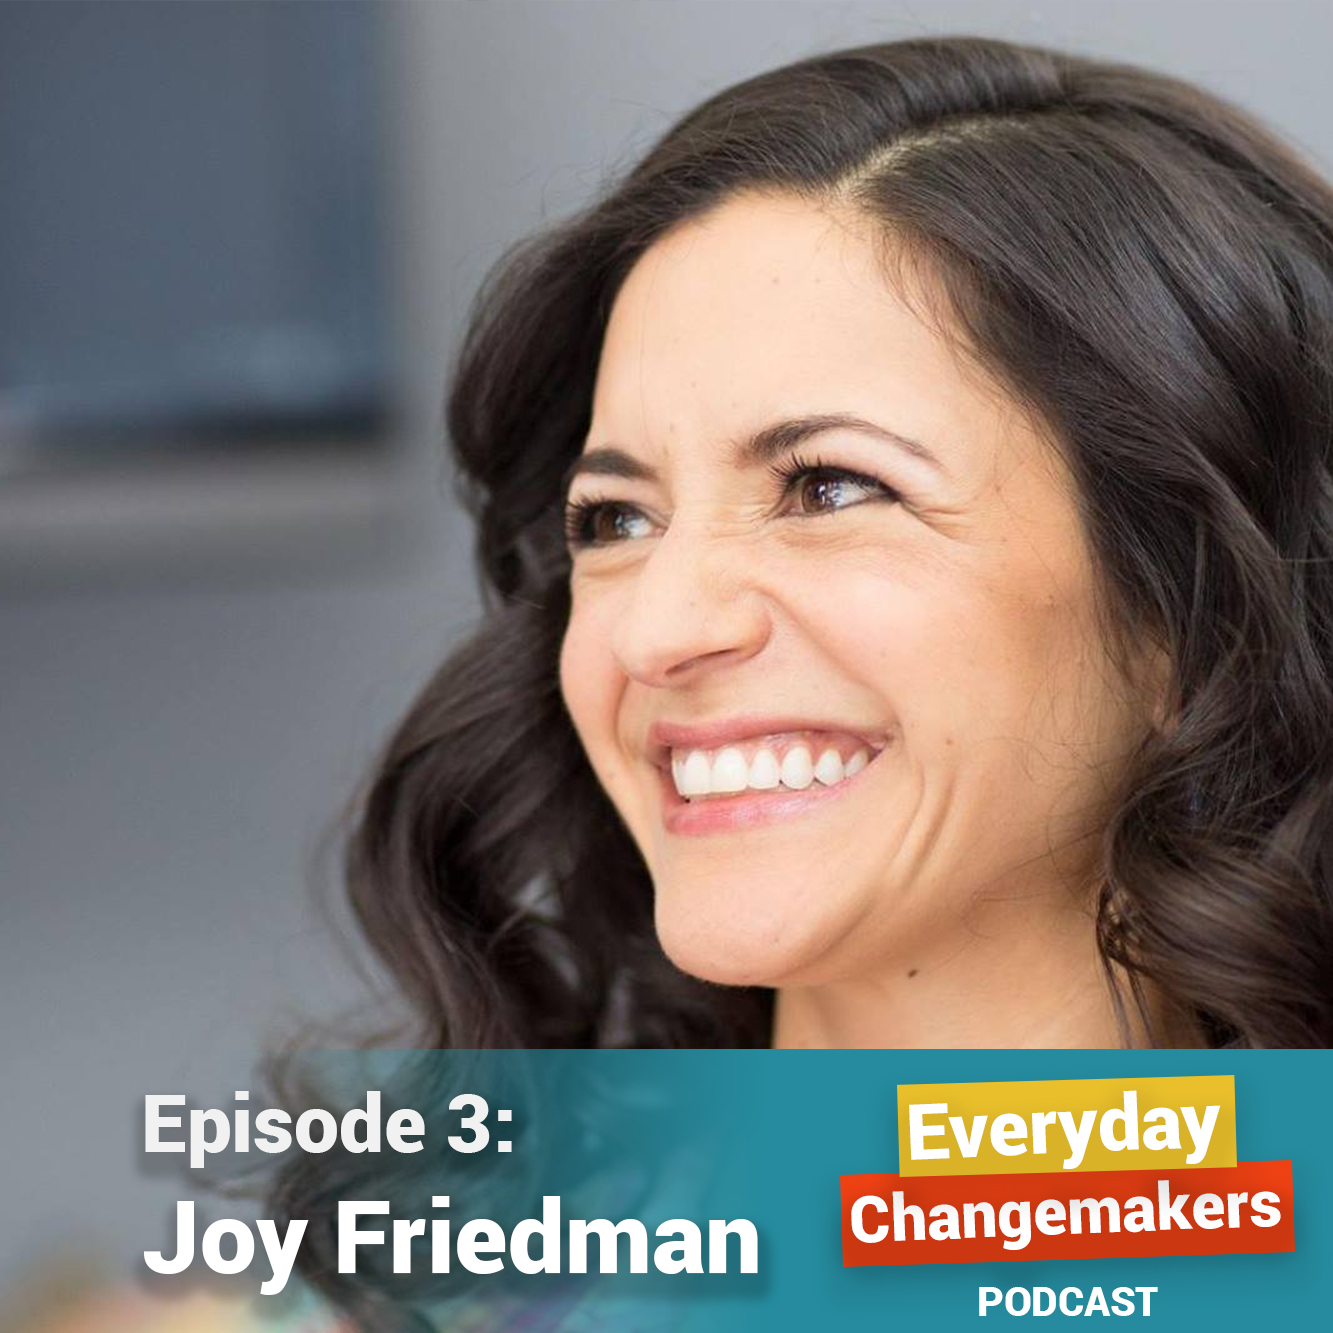 On Facing Fear, Finding New Beliefs, and Making Change - Joy Friedman is the Director of Organizing for the Religious Action Center of Reform Judaism.Our conversation takes a deep dive into Joy's experience feeling like an outsider, first as a Jewish minority in her small Kansas town, then when her parents got divorced. Joy shares how becoming a community organizer gave her an opportunity to confront her fears, claim her own power in relationship to others, and support communities and religious leaders across the country to lean into new beliefs and make change together.Bonus: You can download the Facing Fear Guide right here.